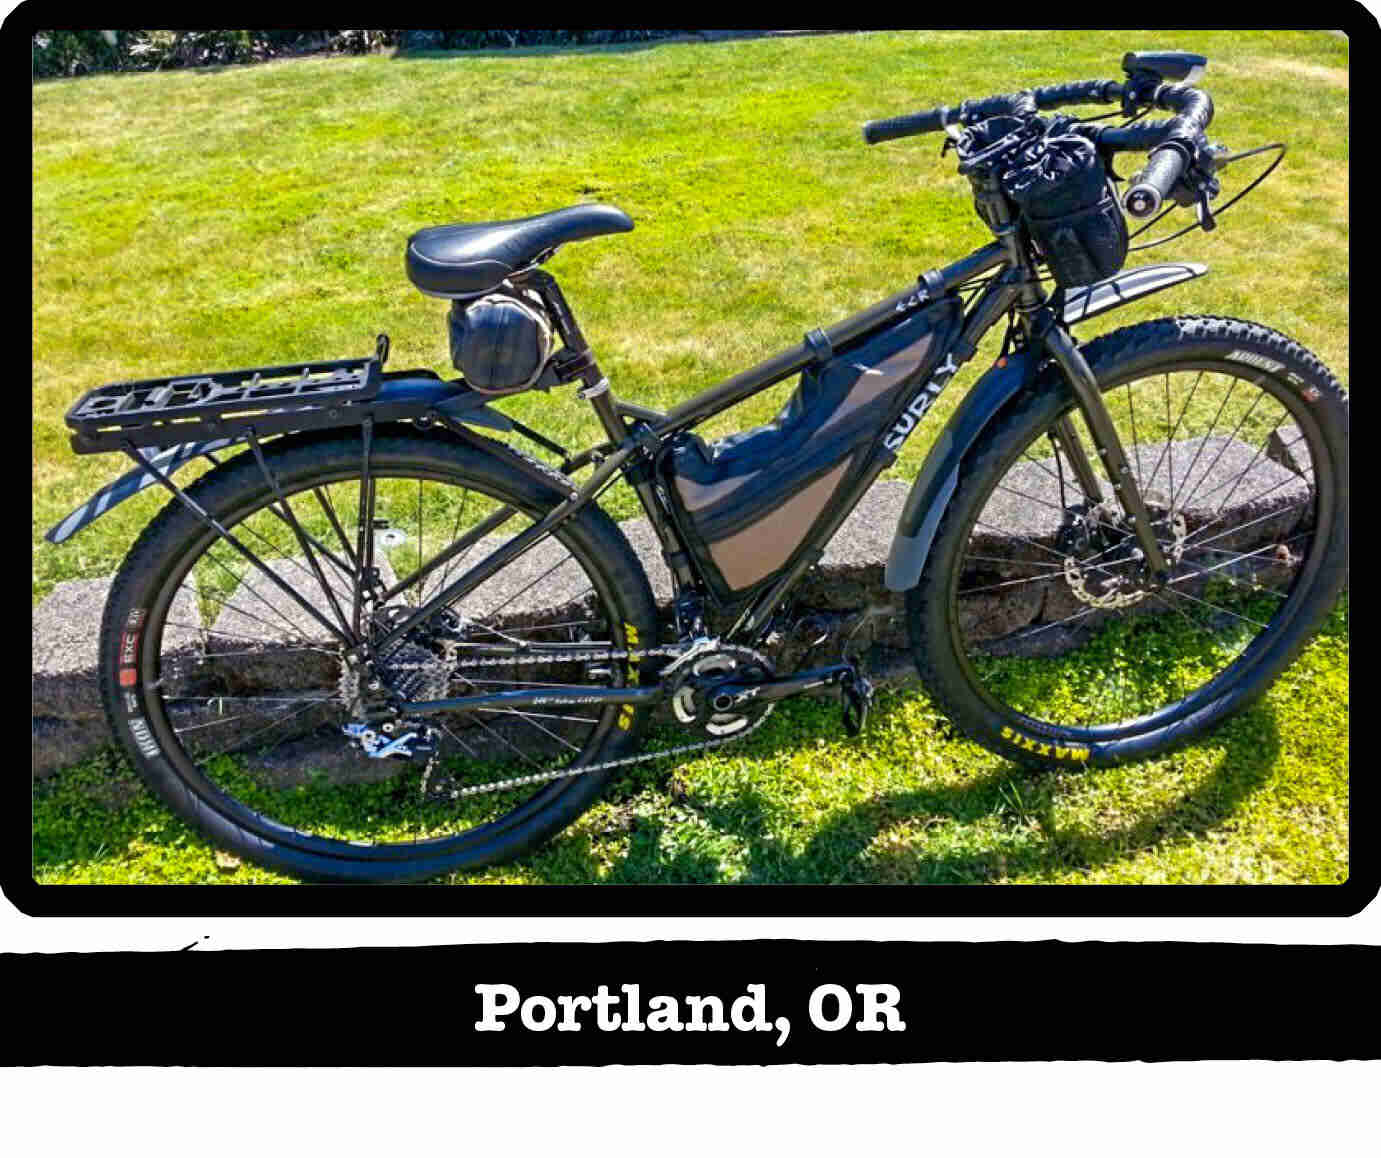 Right side view of a Surly ECR bike on grass - Portland, OR tag below image